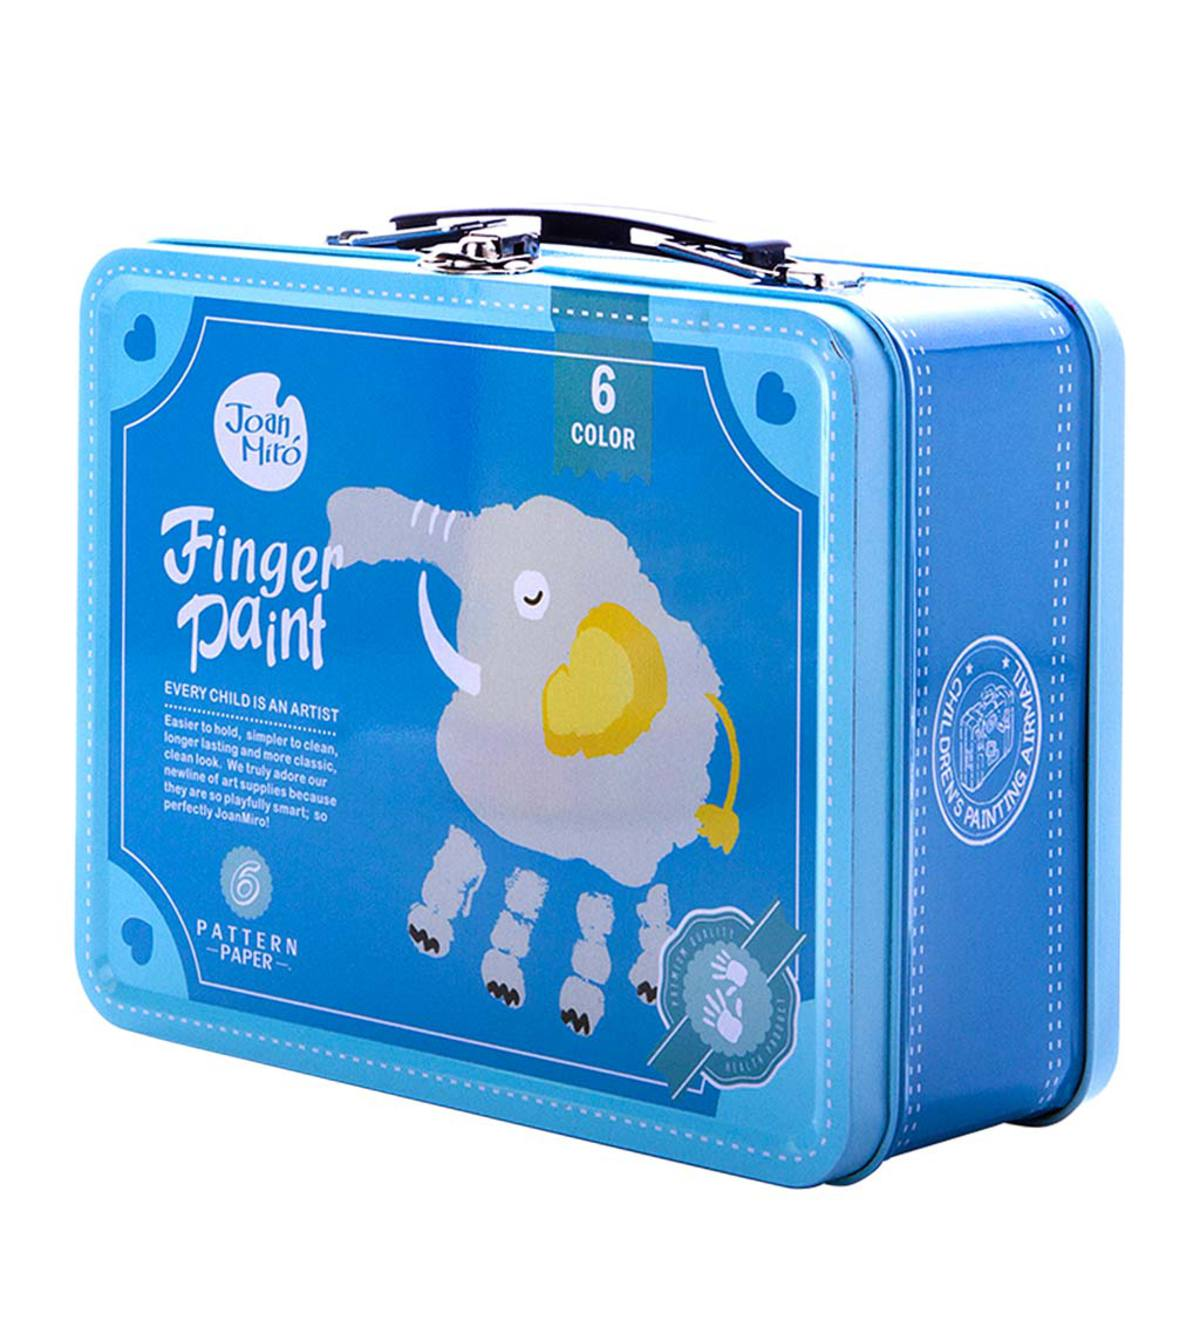 Portable Finger Paint Kit - Blue Case